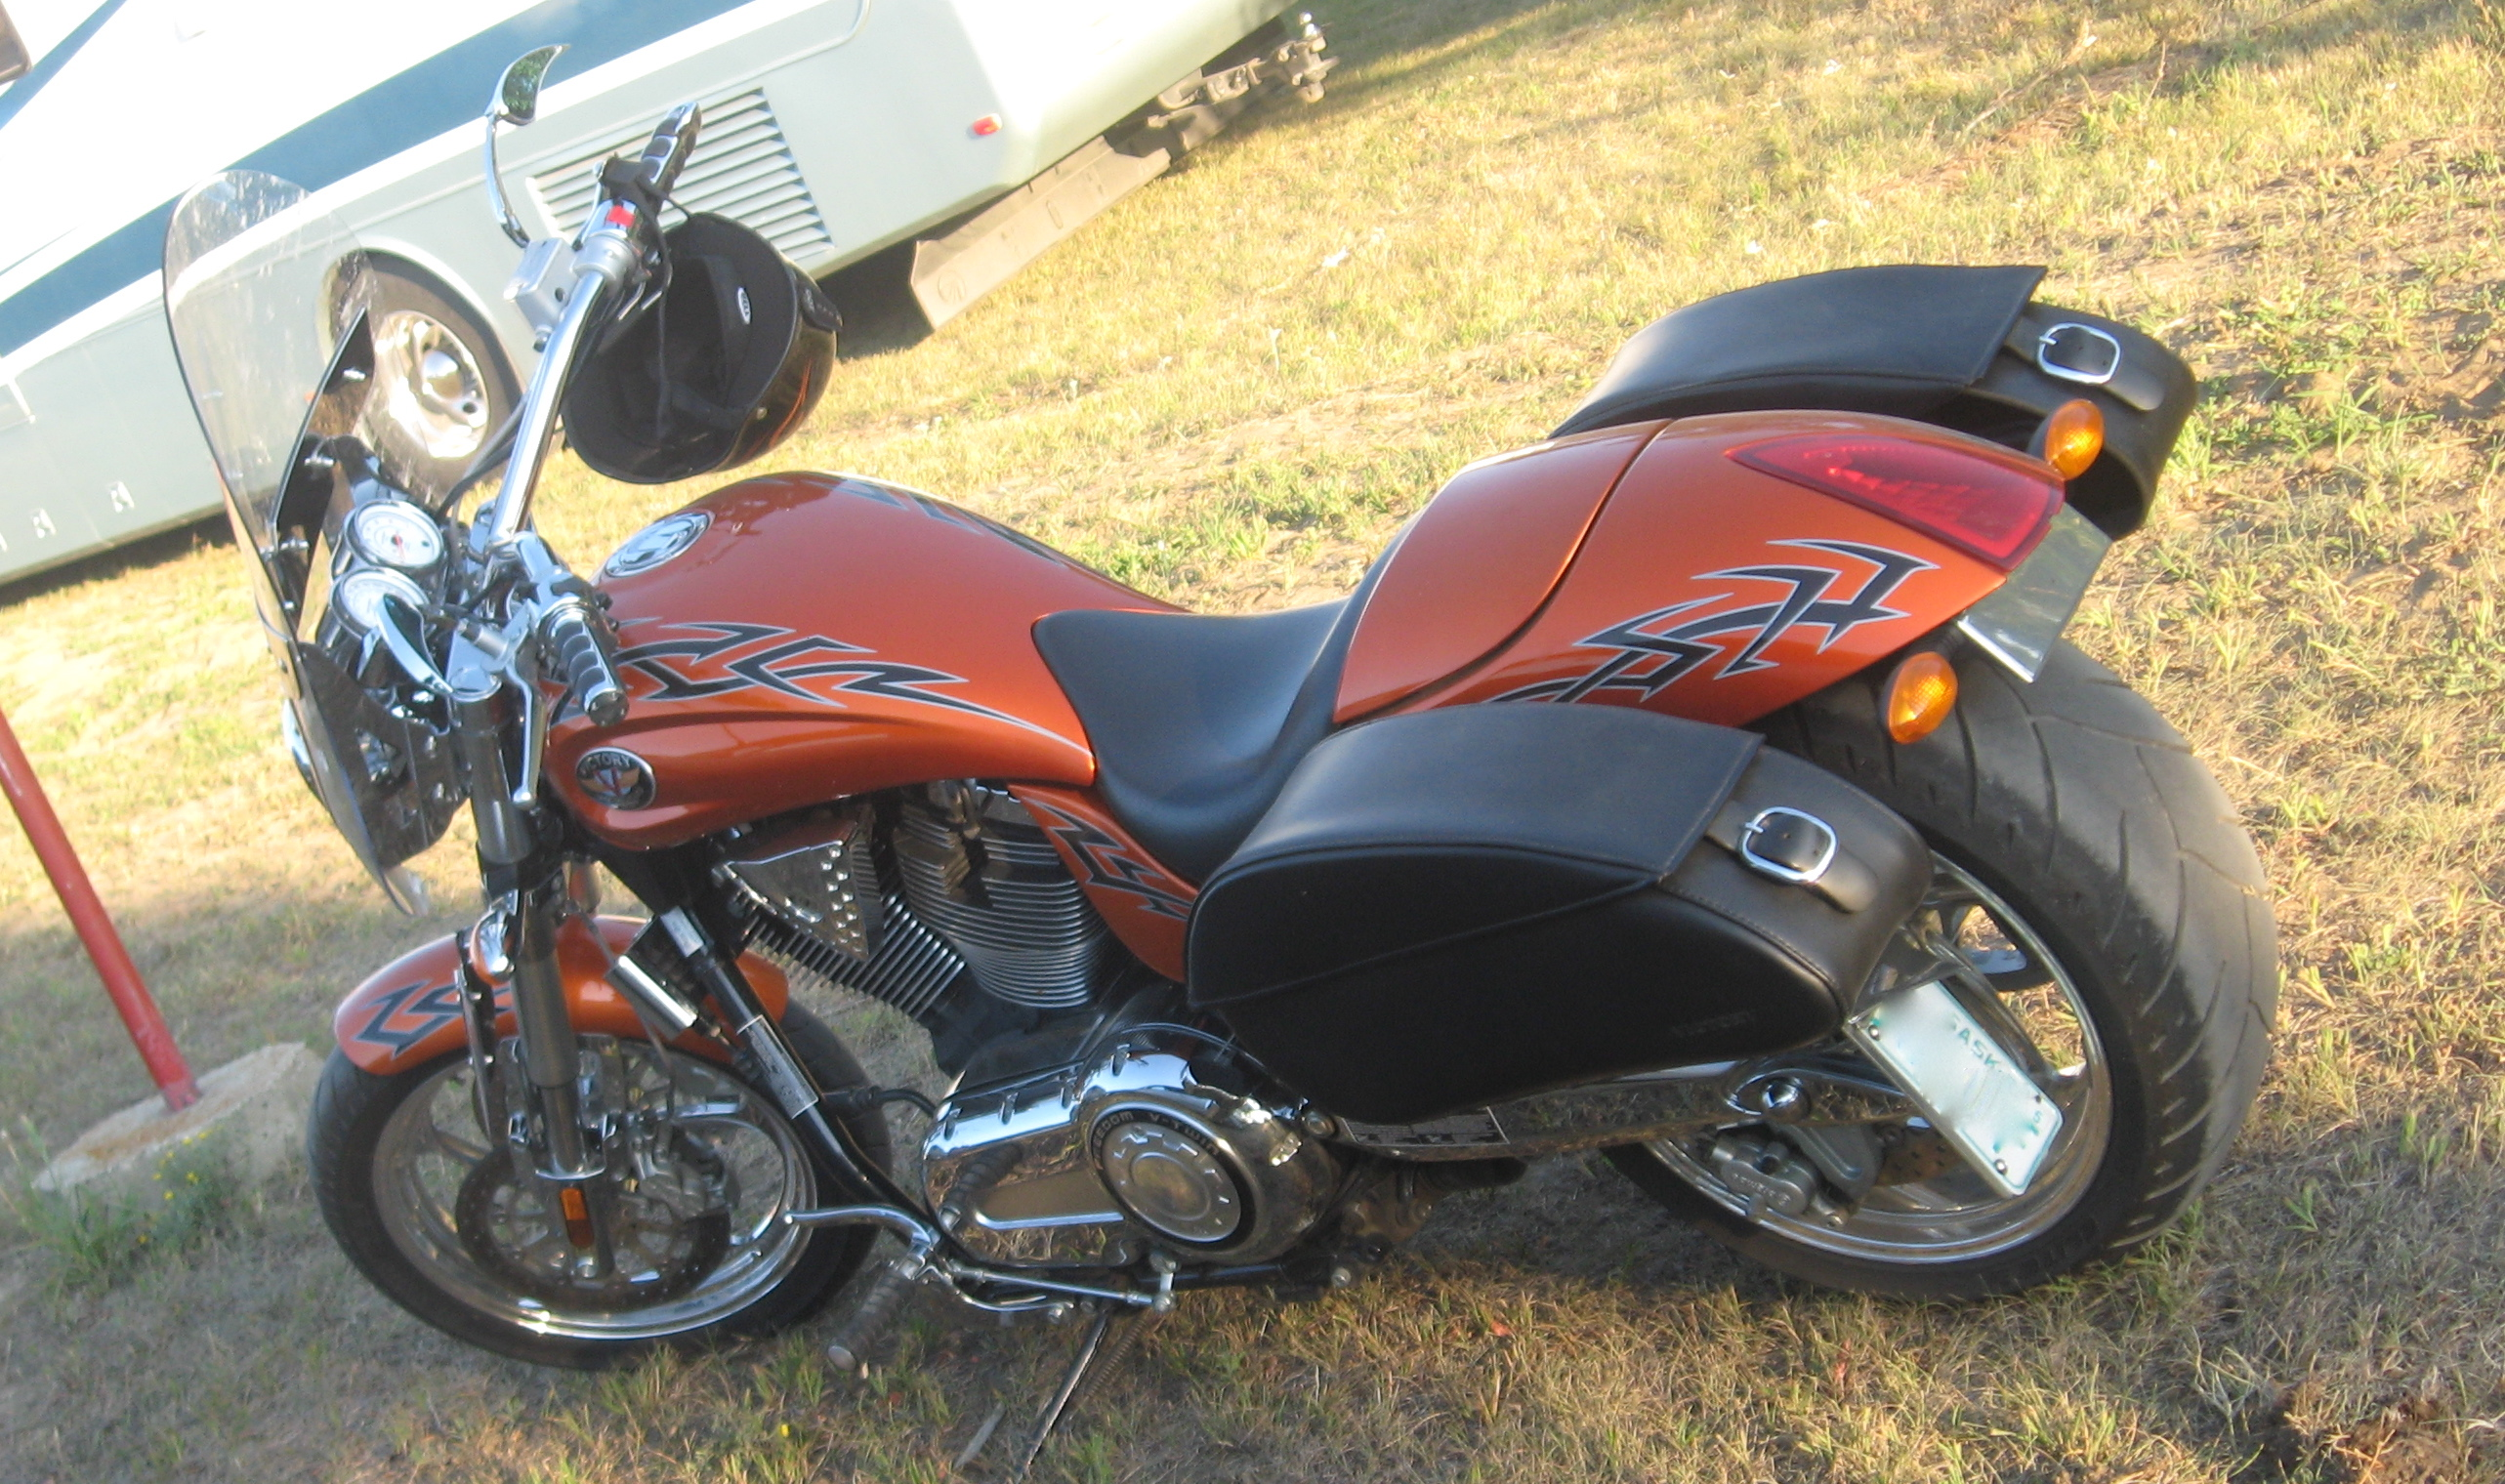 Victory Touring Cruiser 1500 2005 images #129165